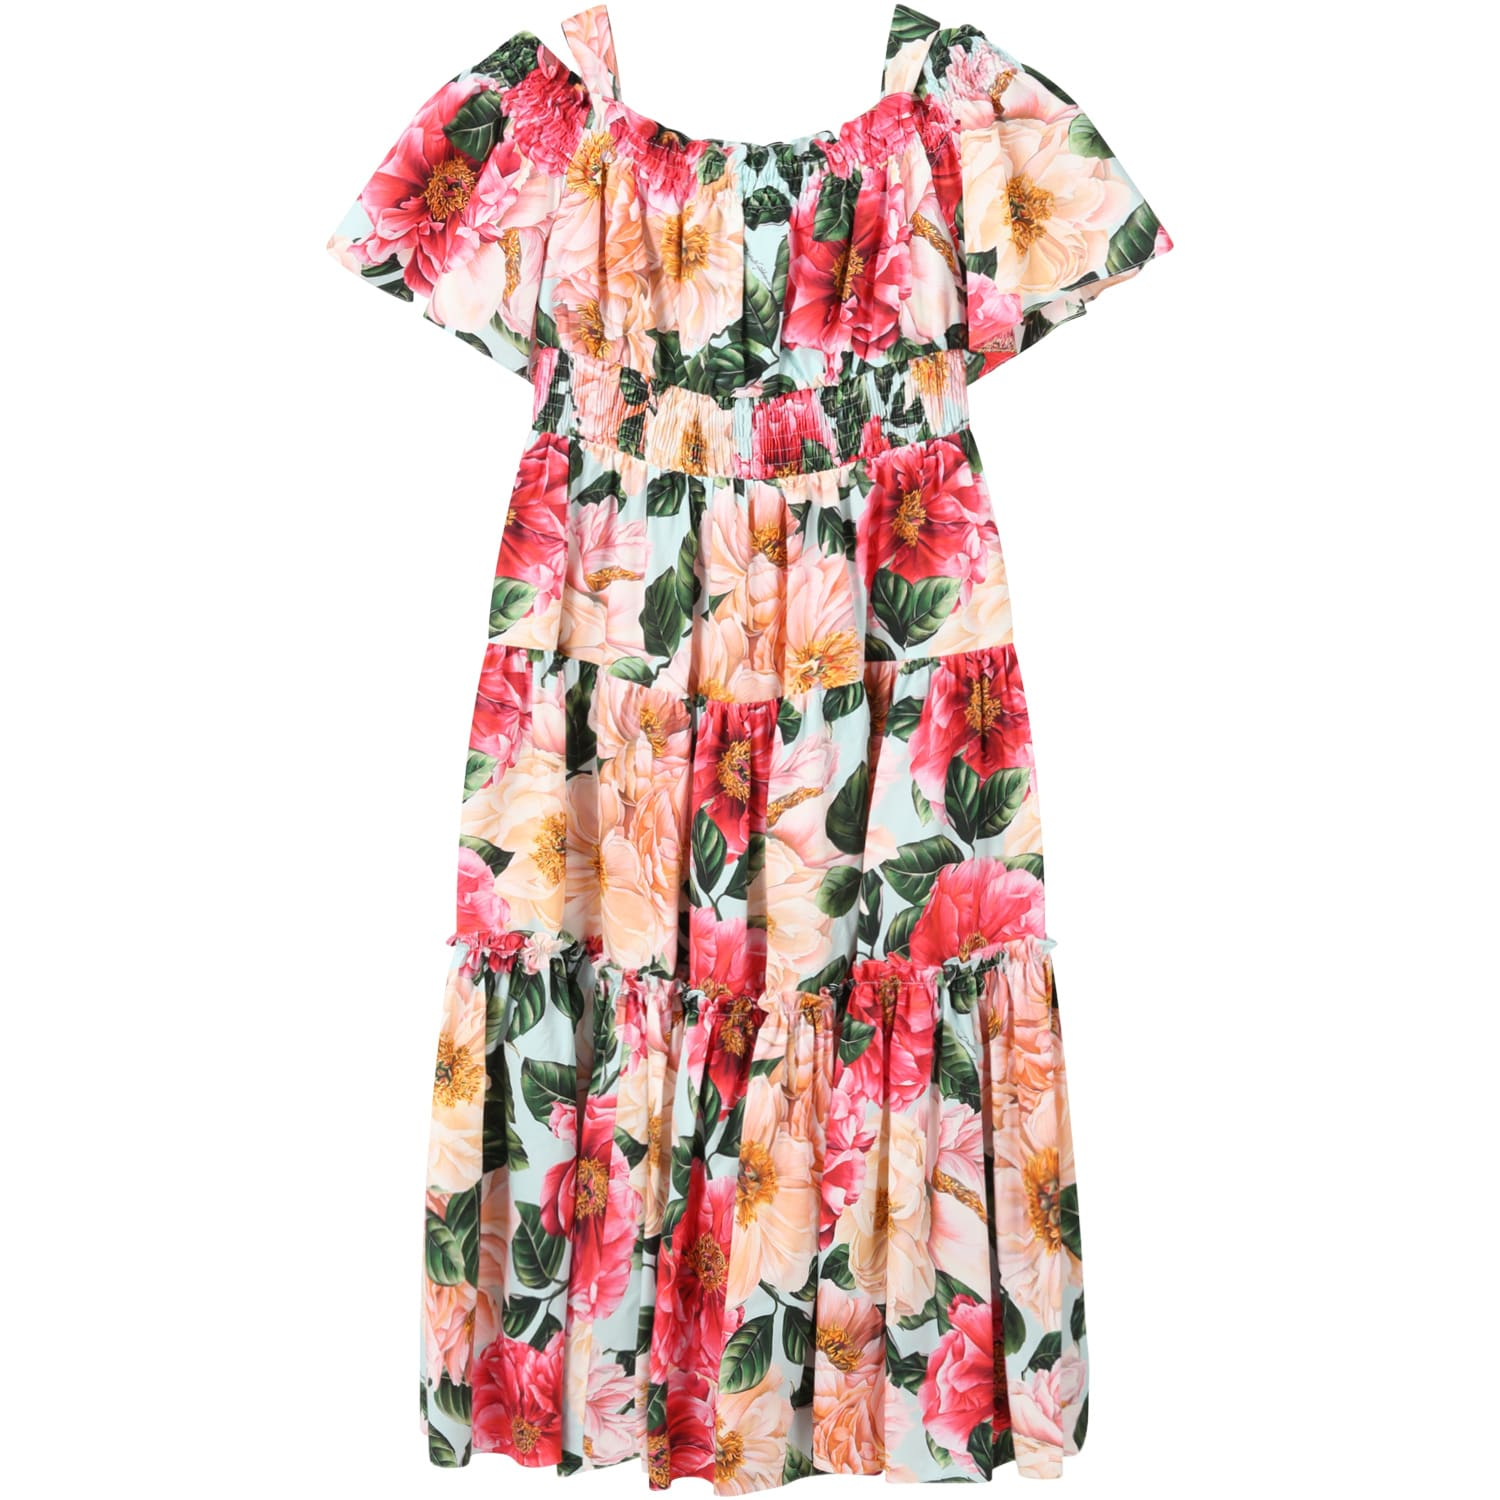 Dolce & Gabbana MULTICOLOR DRESS FOR GIRL WITH CAMELLIAS